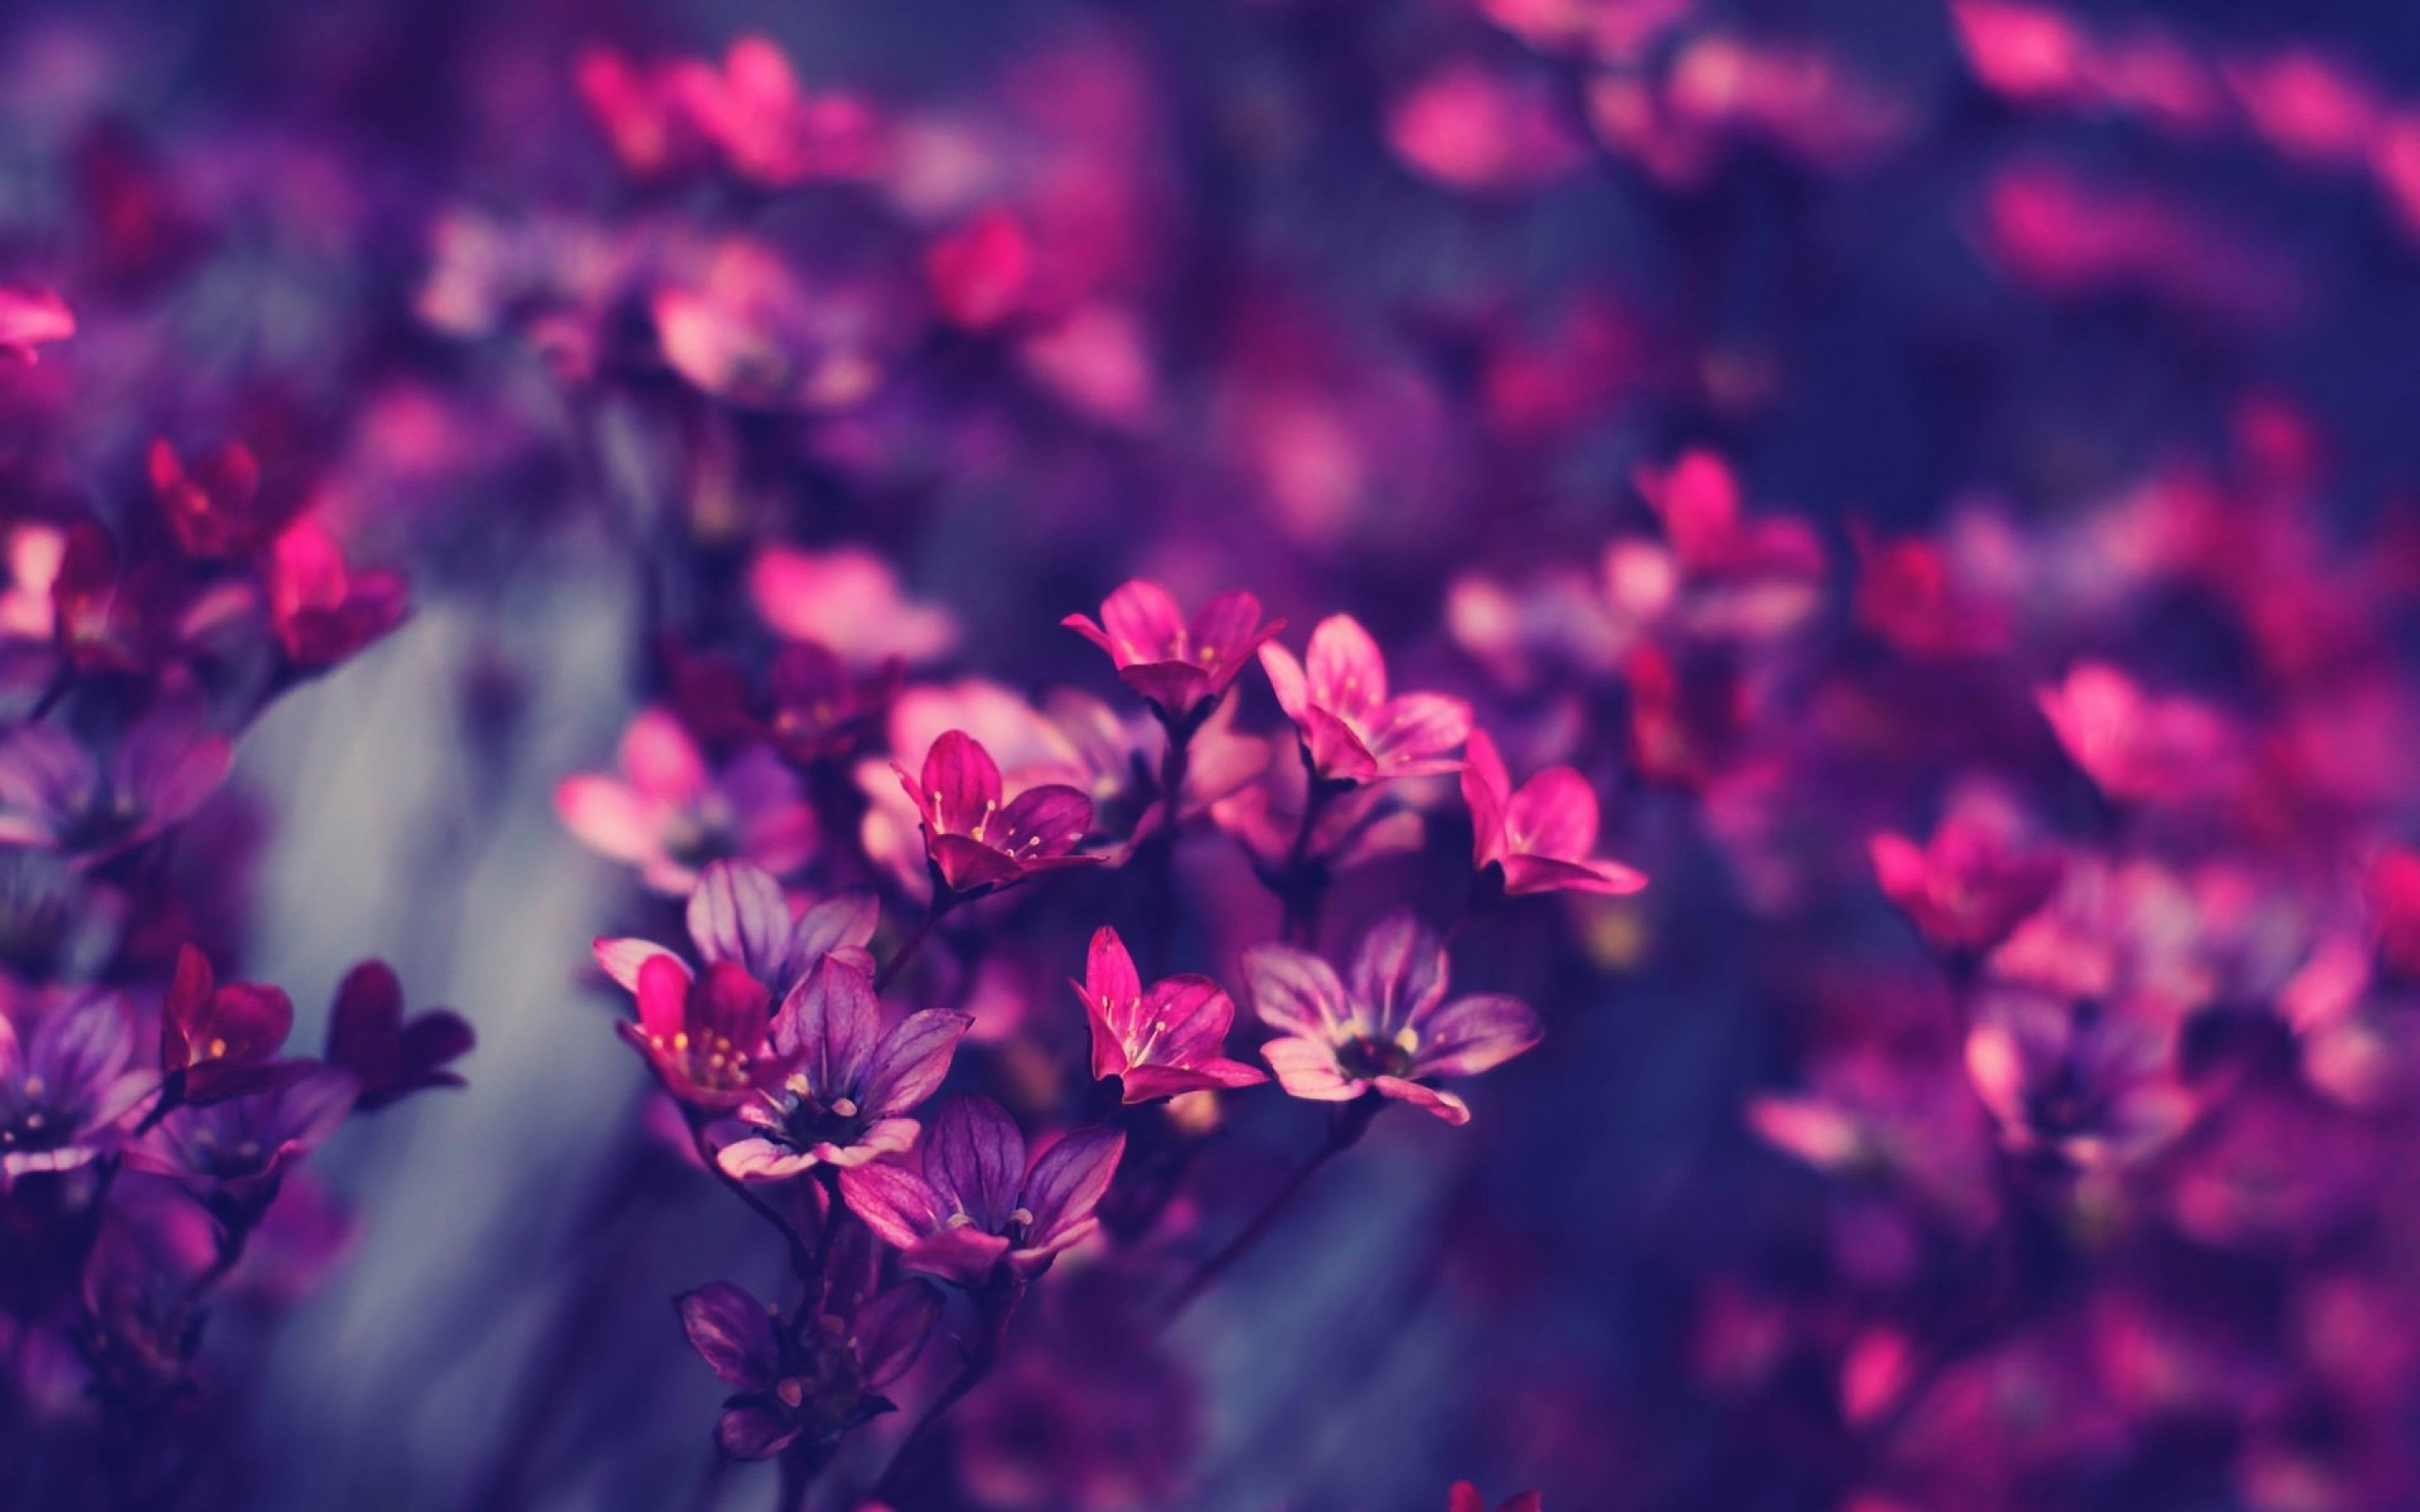 And Vintage Summer Flowers Wallpaper Free Flower Pc Tumblr Laptop